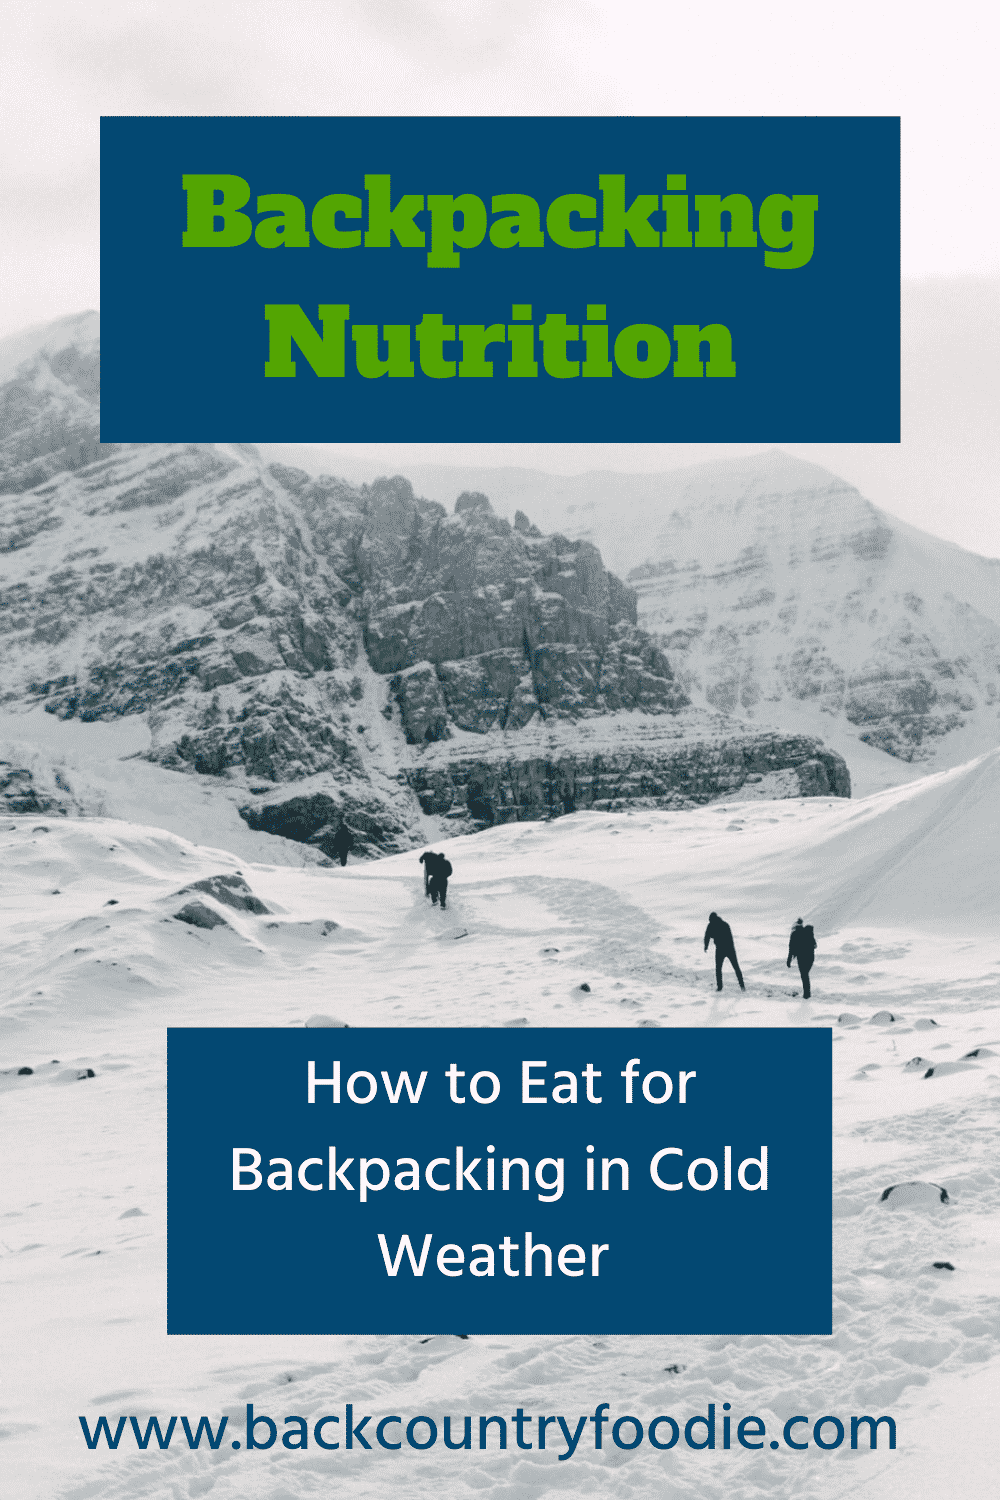 Did you know that your calorie and hydration needs increase when backpacking in cold weather? Here are some easy tips to make sure you are eating and drinking enough for your adventures. #backcountryfoodie #coldweatherbackpacking #winterbackpacking #highaltitudehiking #backpackingnutrition